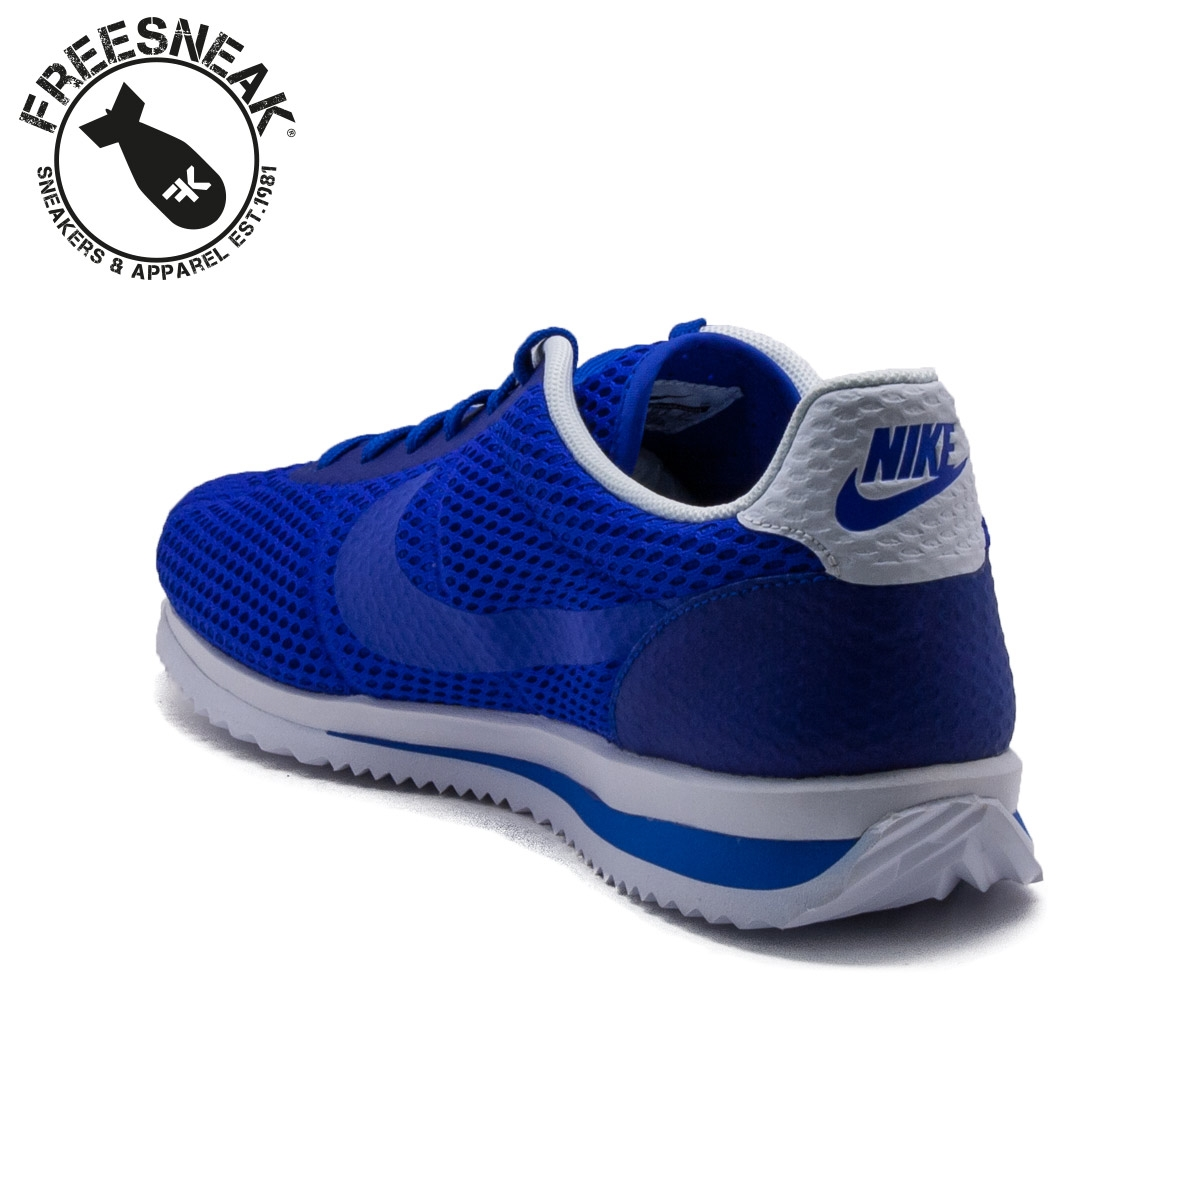 nike cortez usato air max thea femme prix. Black Bedroom Furniture Sets. Home Design Ideas